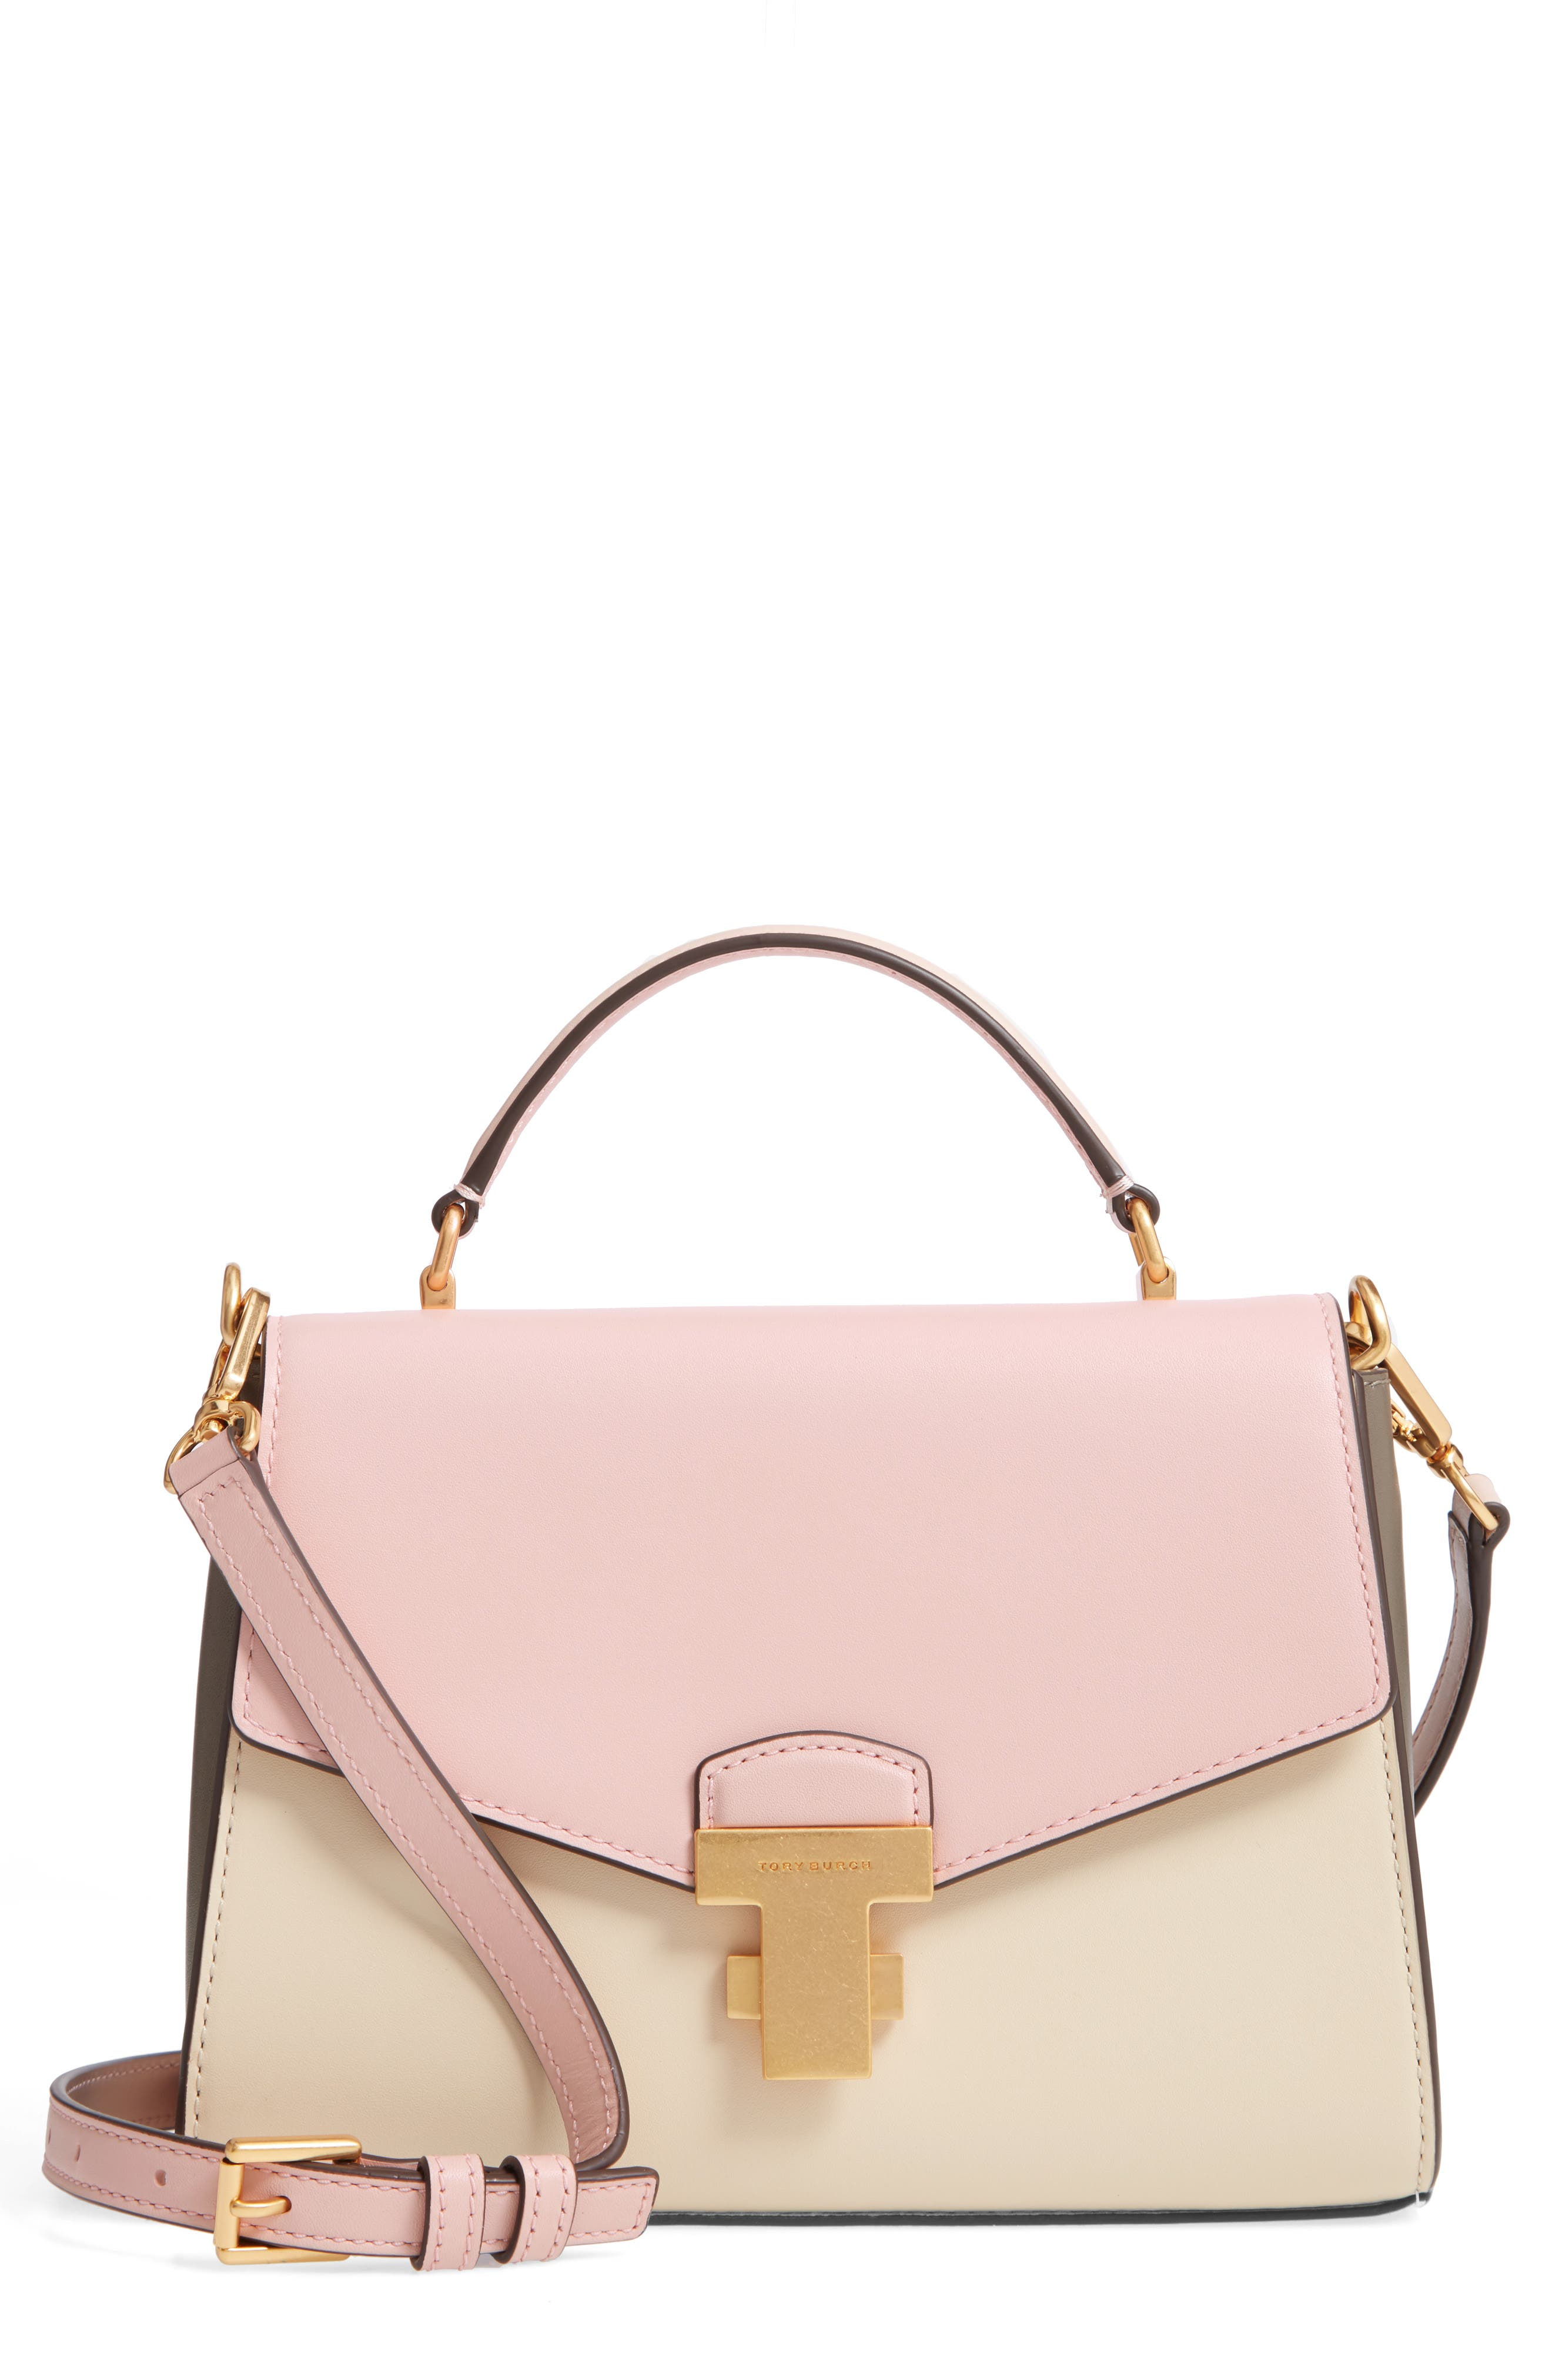 TORY BURCH Small Juliette Colorblock Leather Satchel, Main, color, SHELL PINK/ CREAM/ MUSHROOM